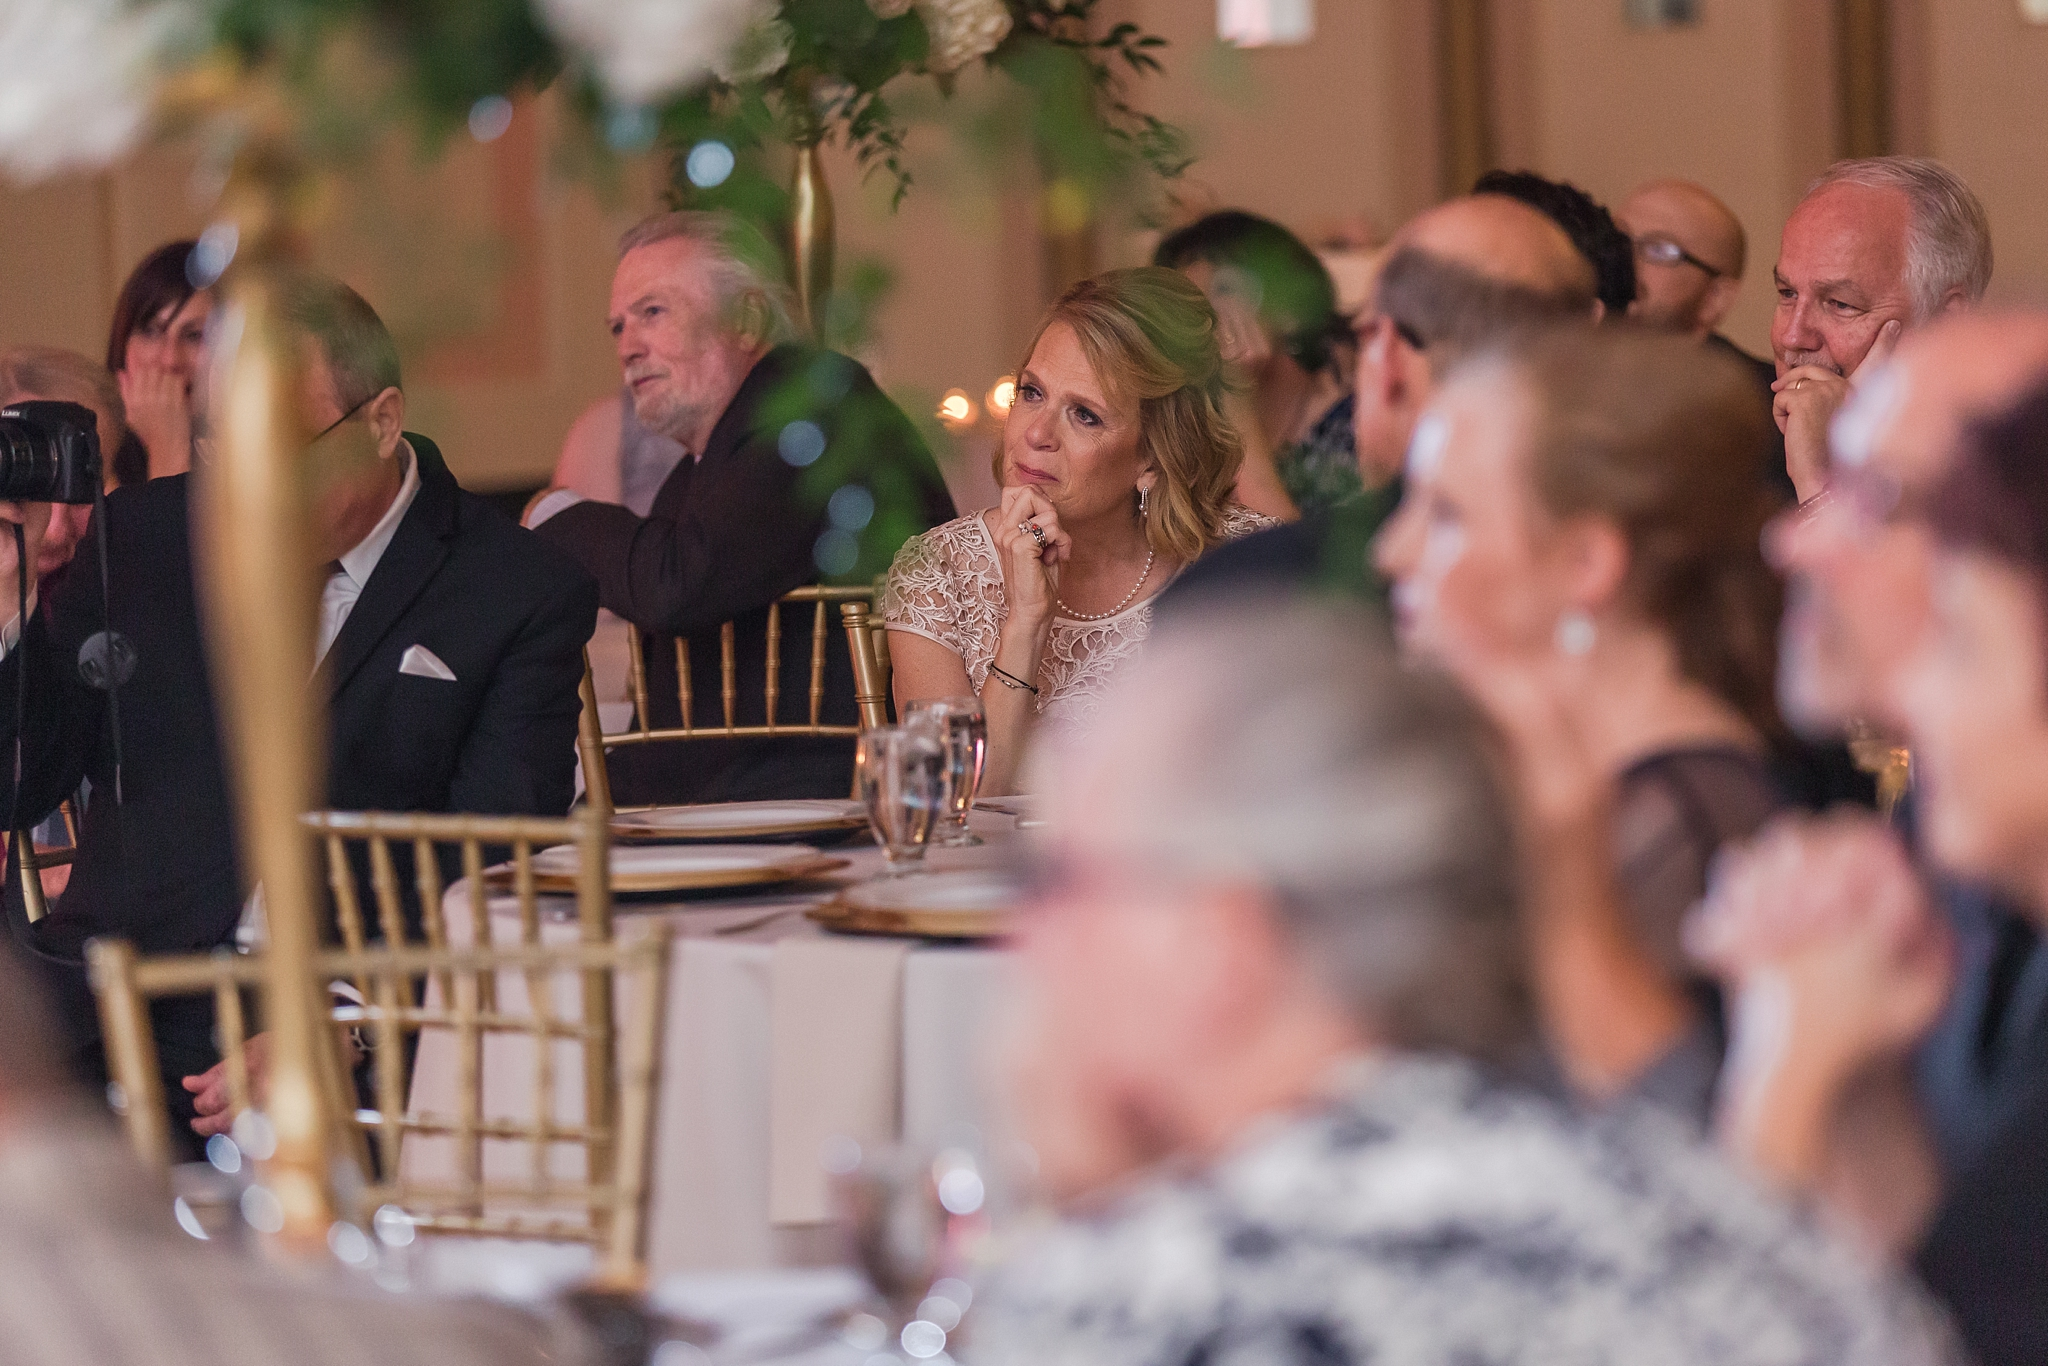 candid-romantic-wedding-photos-at-the-masonic-temple-belle-isle-detroit-institute-of-arts-in-detroit-michigan-by-courtney-carolyn-photography_0098.jpg